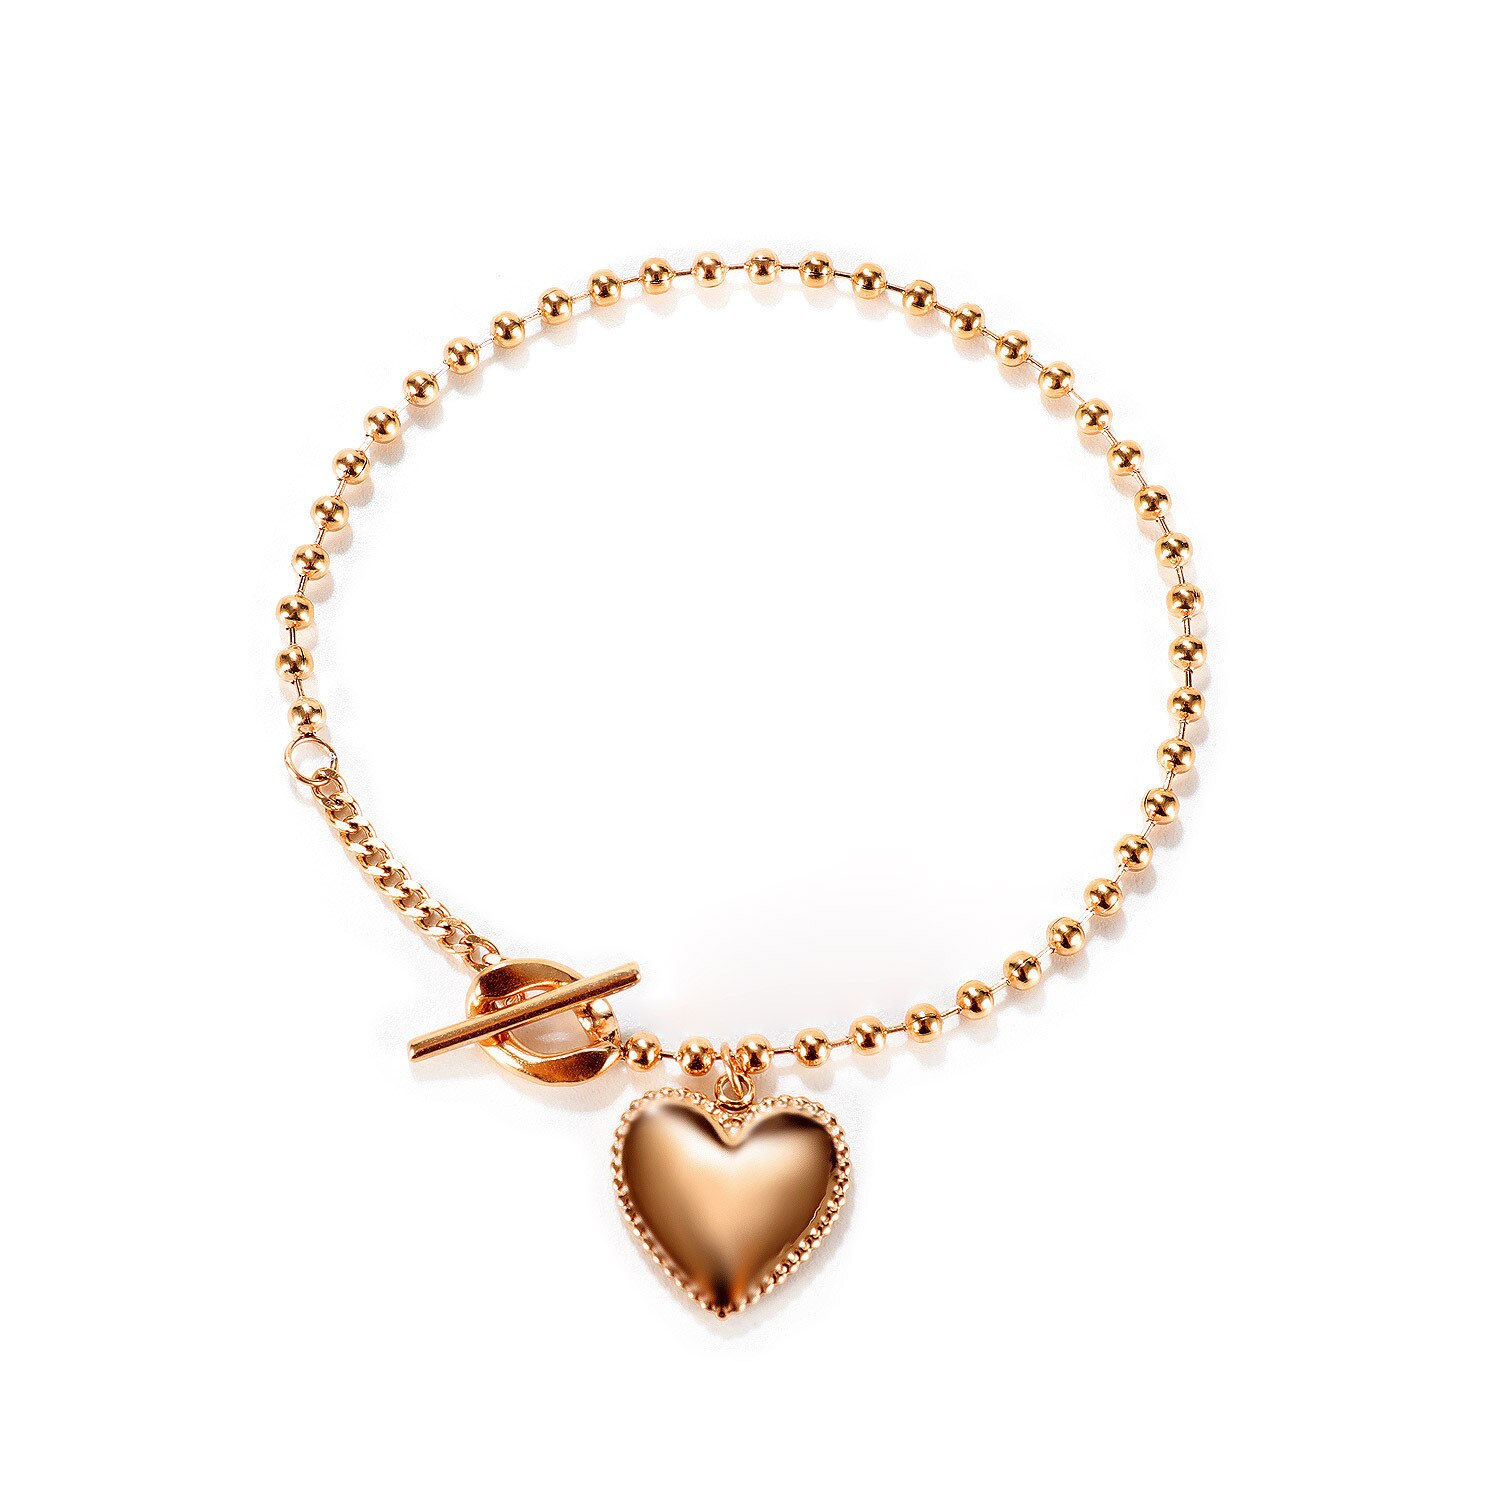 Ornament Japanese and Korean New Fashion Love Pendant Personality All-Match Women's Stainless Steel Bracelet